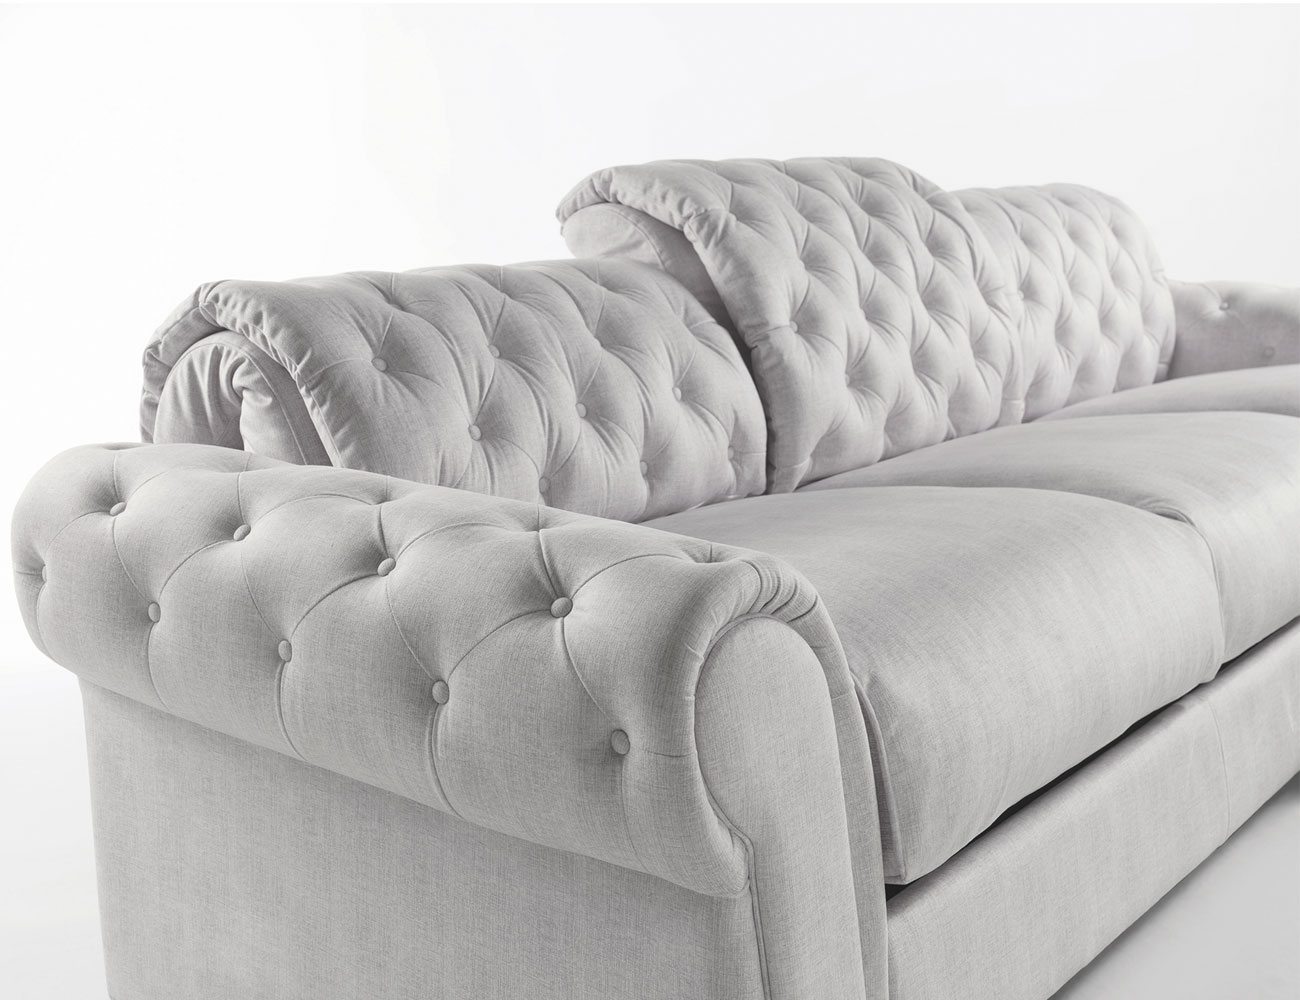 Sofa chaiselongue gran lujo decorativo capitone blanco tela 155